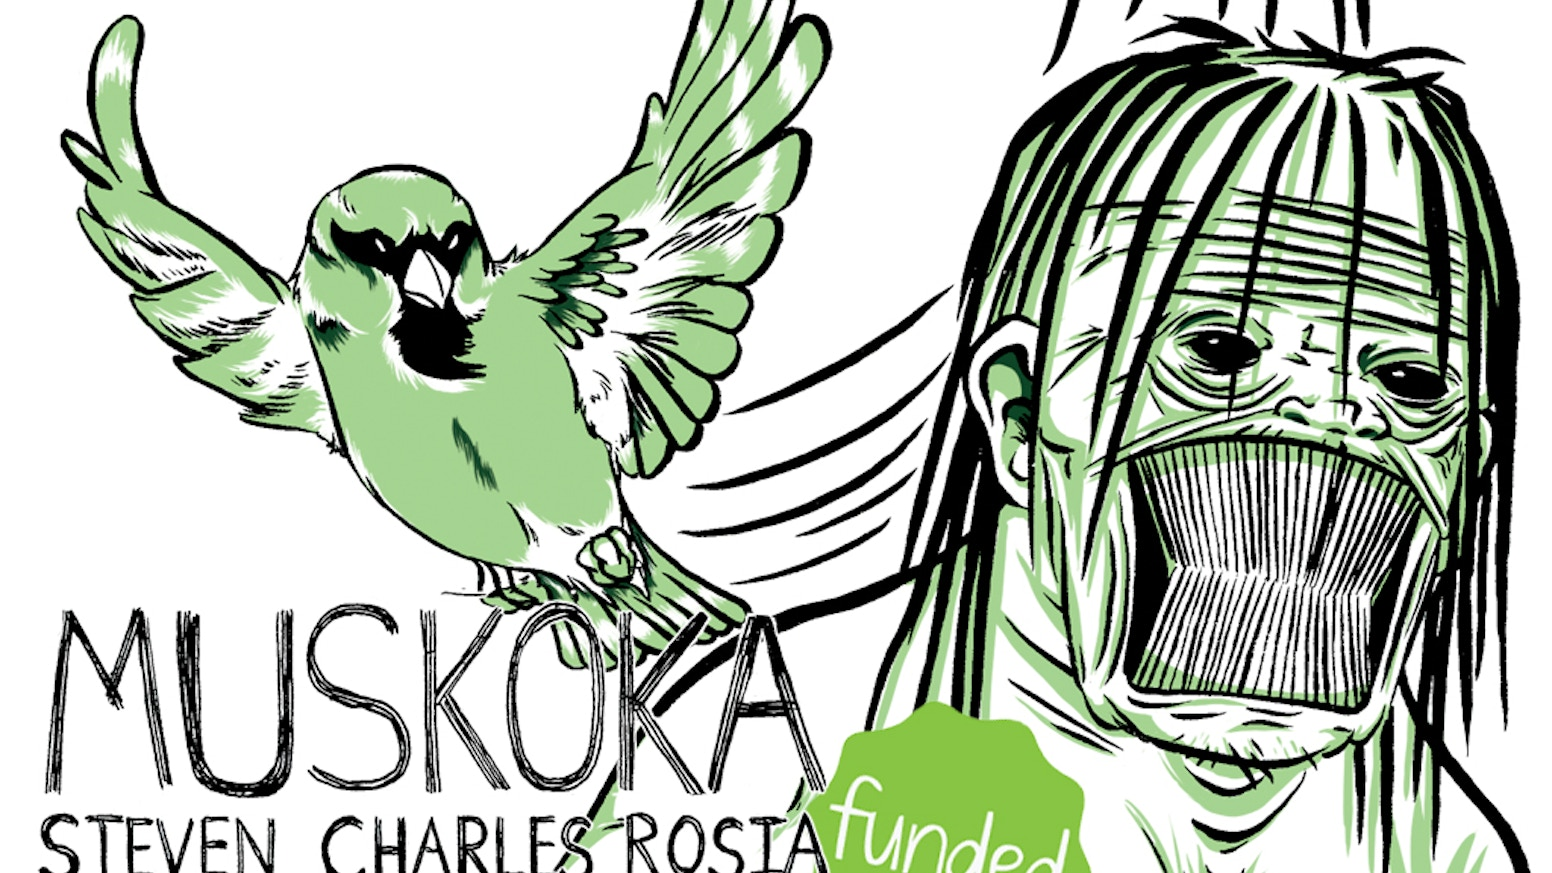 The discovery of a new tribe of people sparks a field study that is doomed before it has even begun. Muskoka - a mature comic.